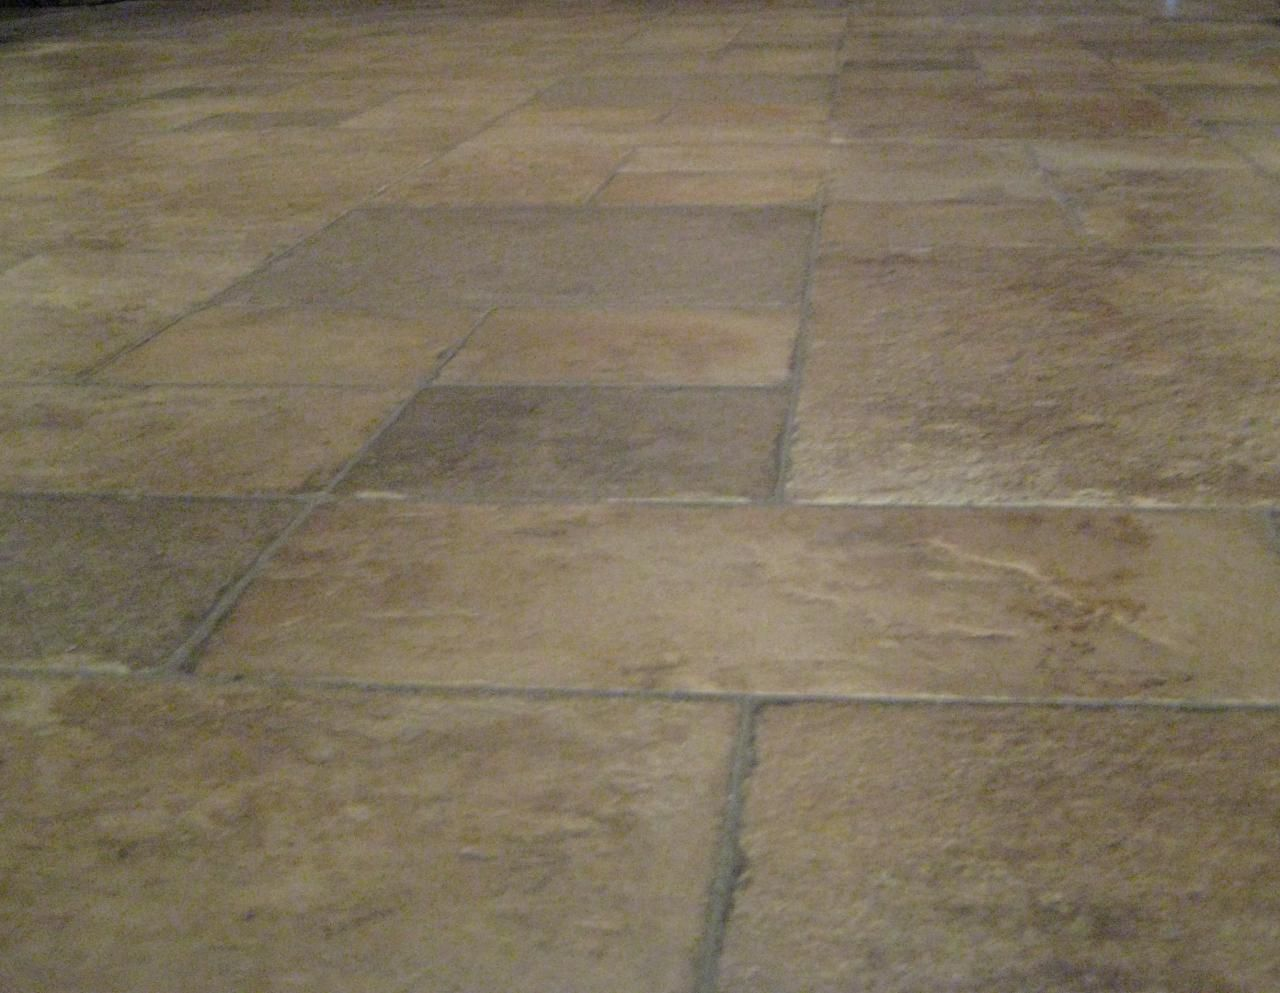 Indoor stone flooring tile floor tile patterns and designs indoor stone flooring tile floor tile patterns and designs buzzle dailygadgetfo Images